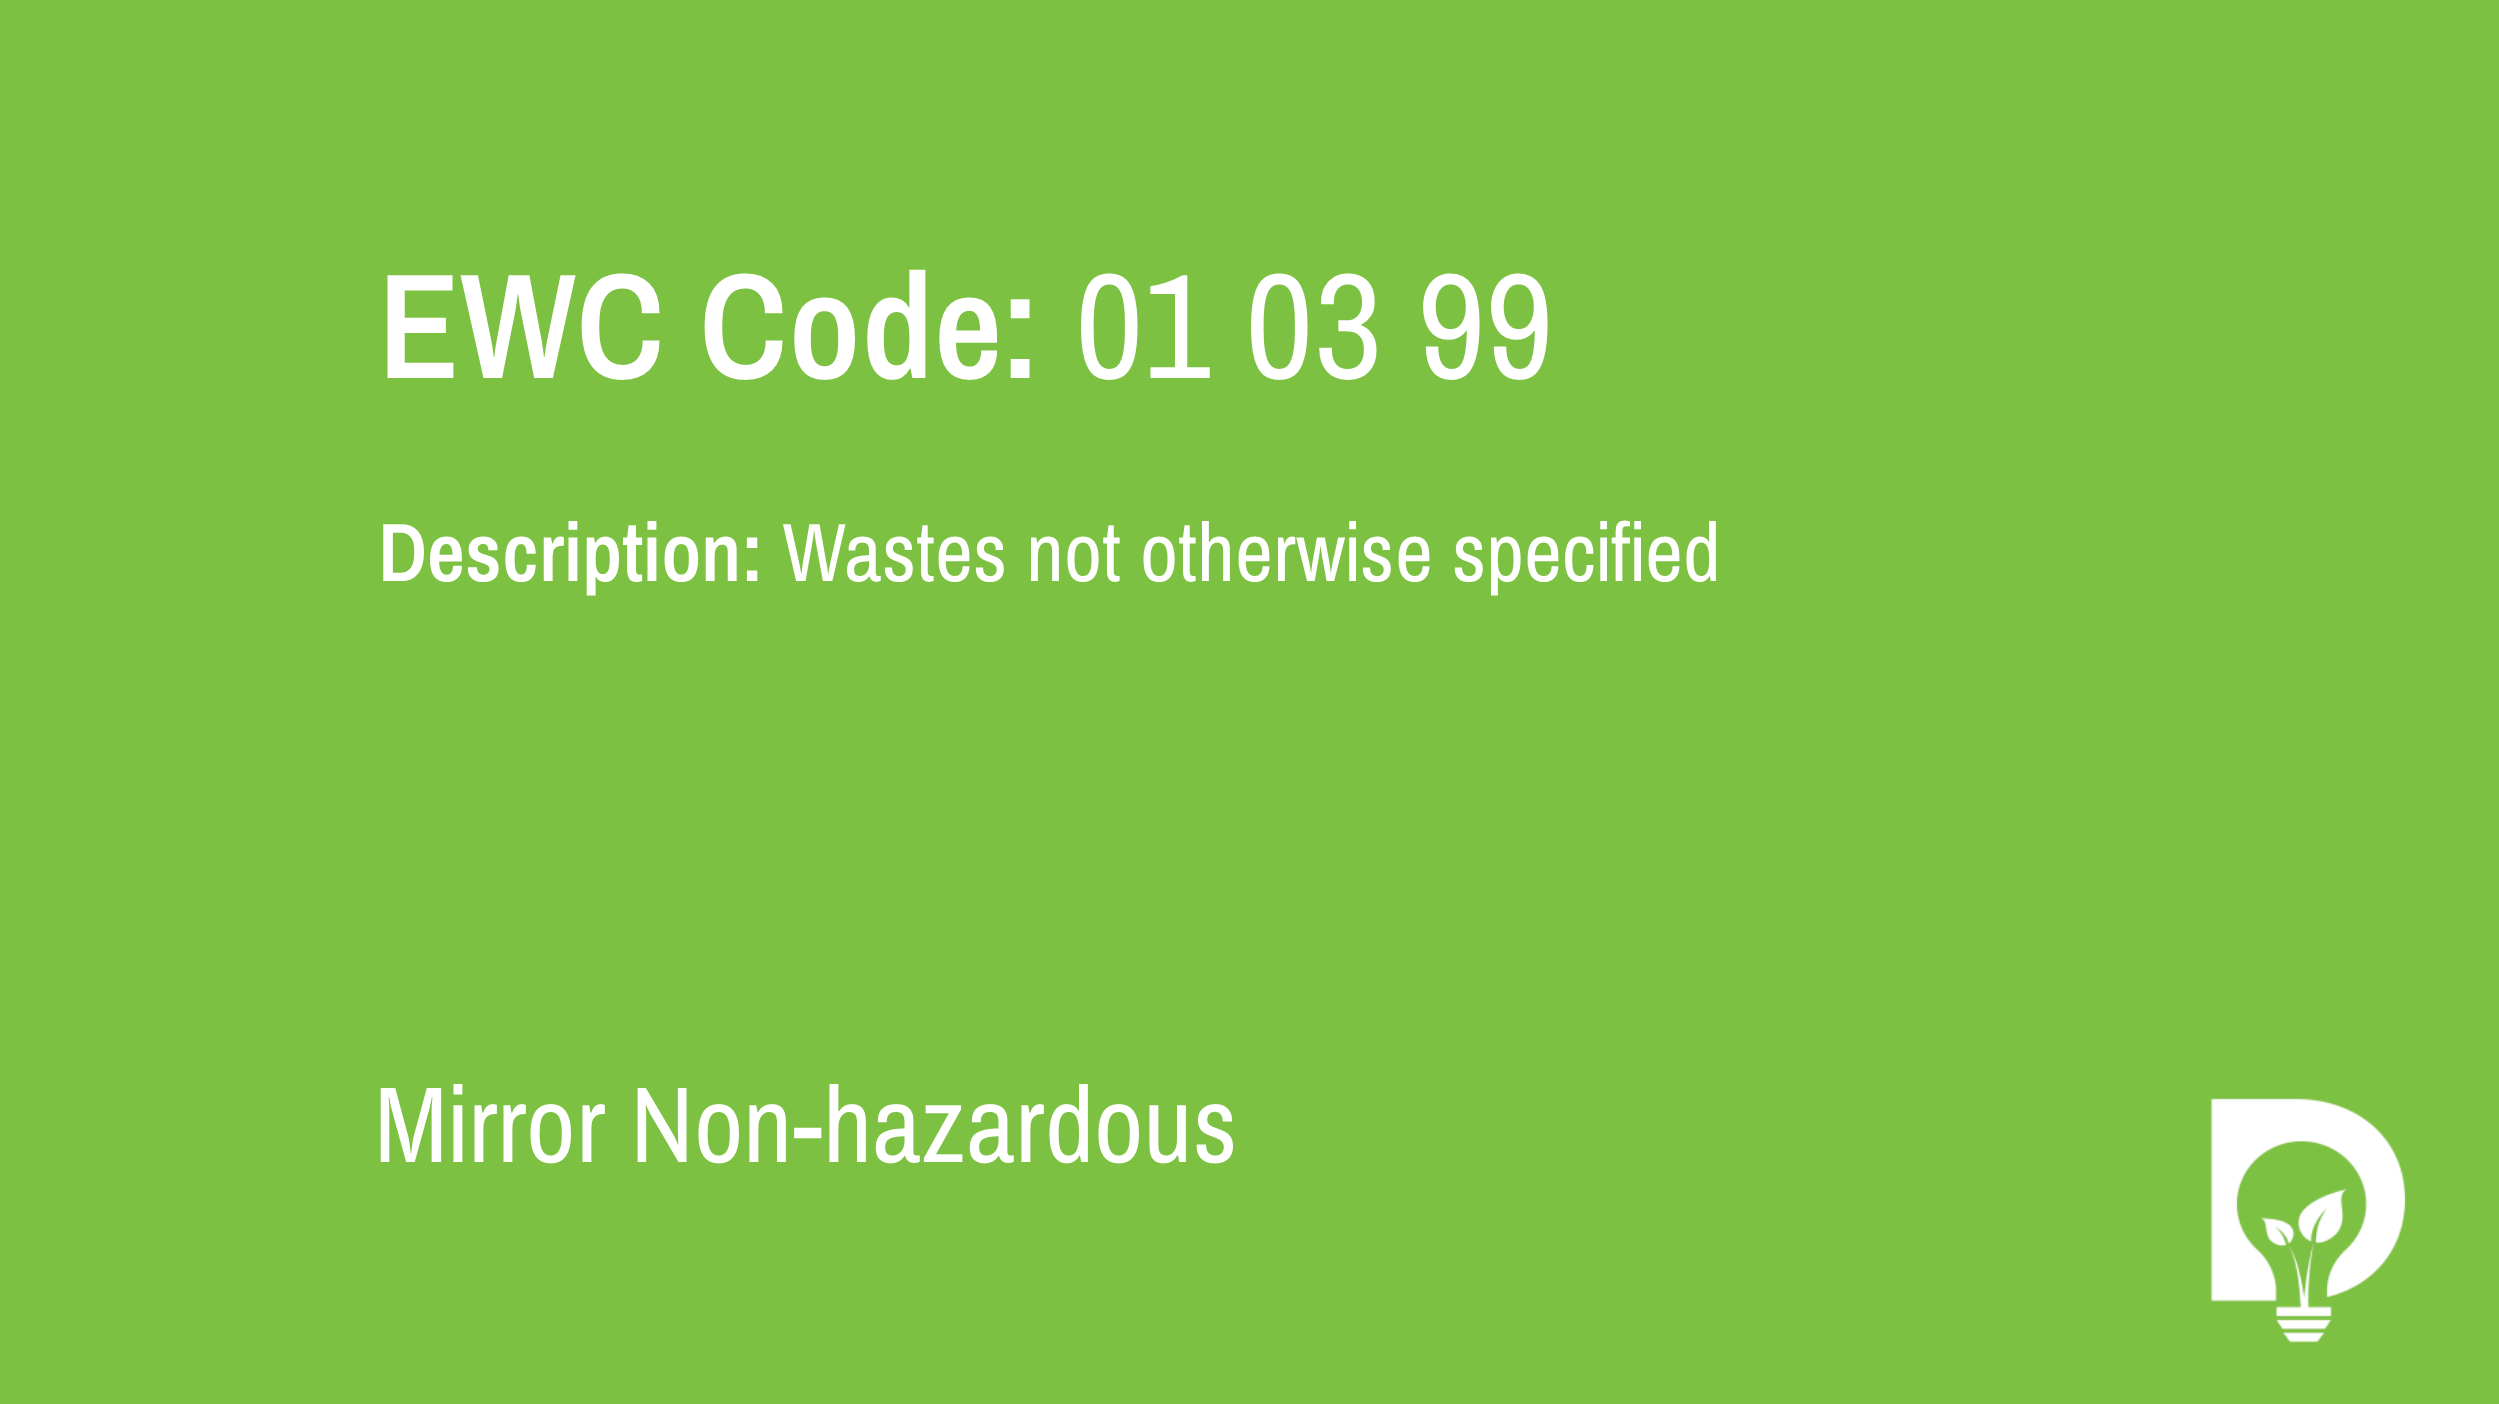 EWC Code: 01 03 99 - wastes not otherwise specified. Type: Mirror Non-hazardous. Image by Dsposal